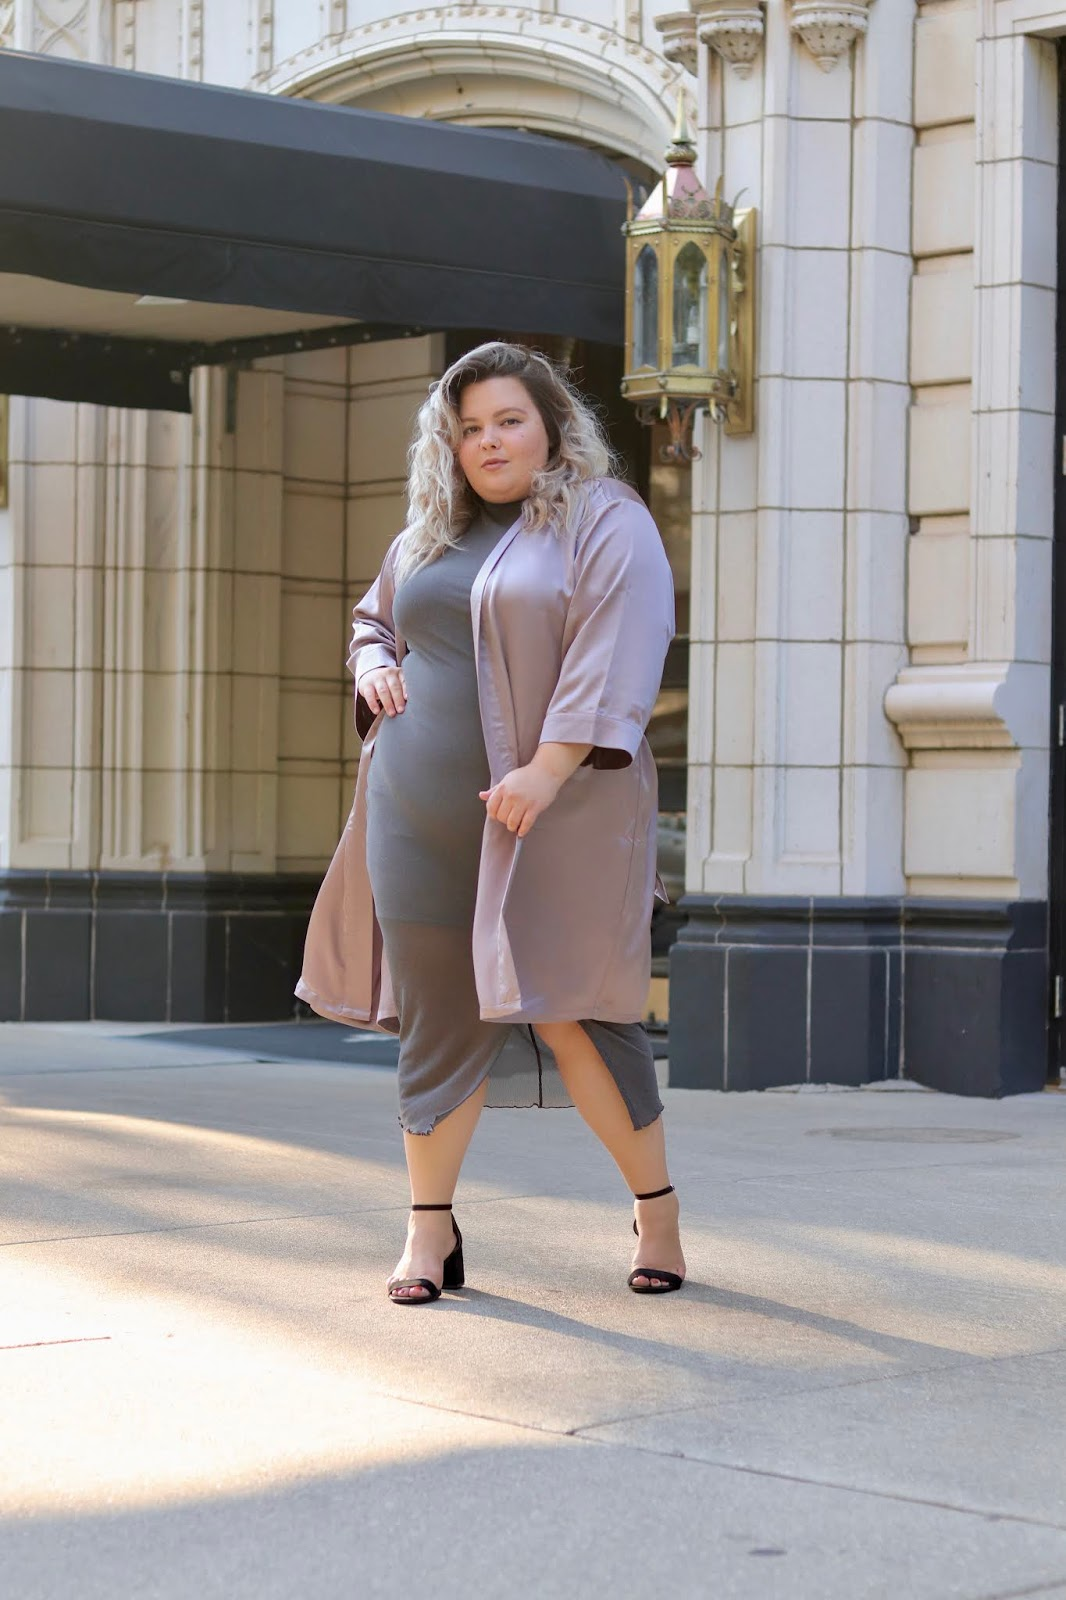 Chicago Plus Size Petite Fashion Blogger, influencer, YouTuber, and model Natalie Craig, of Natalie in the City, reviews Soncy's satin robe kimono duster in lavender, and the brand's see through mesh dress with a slit.